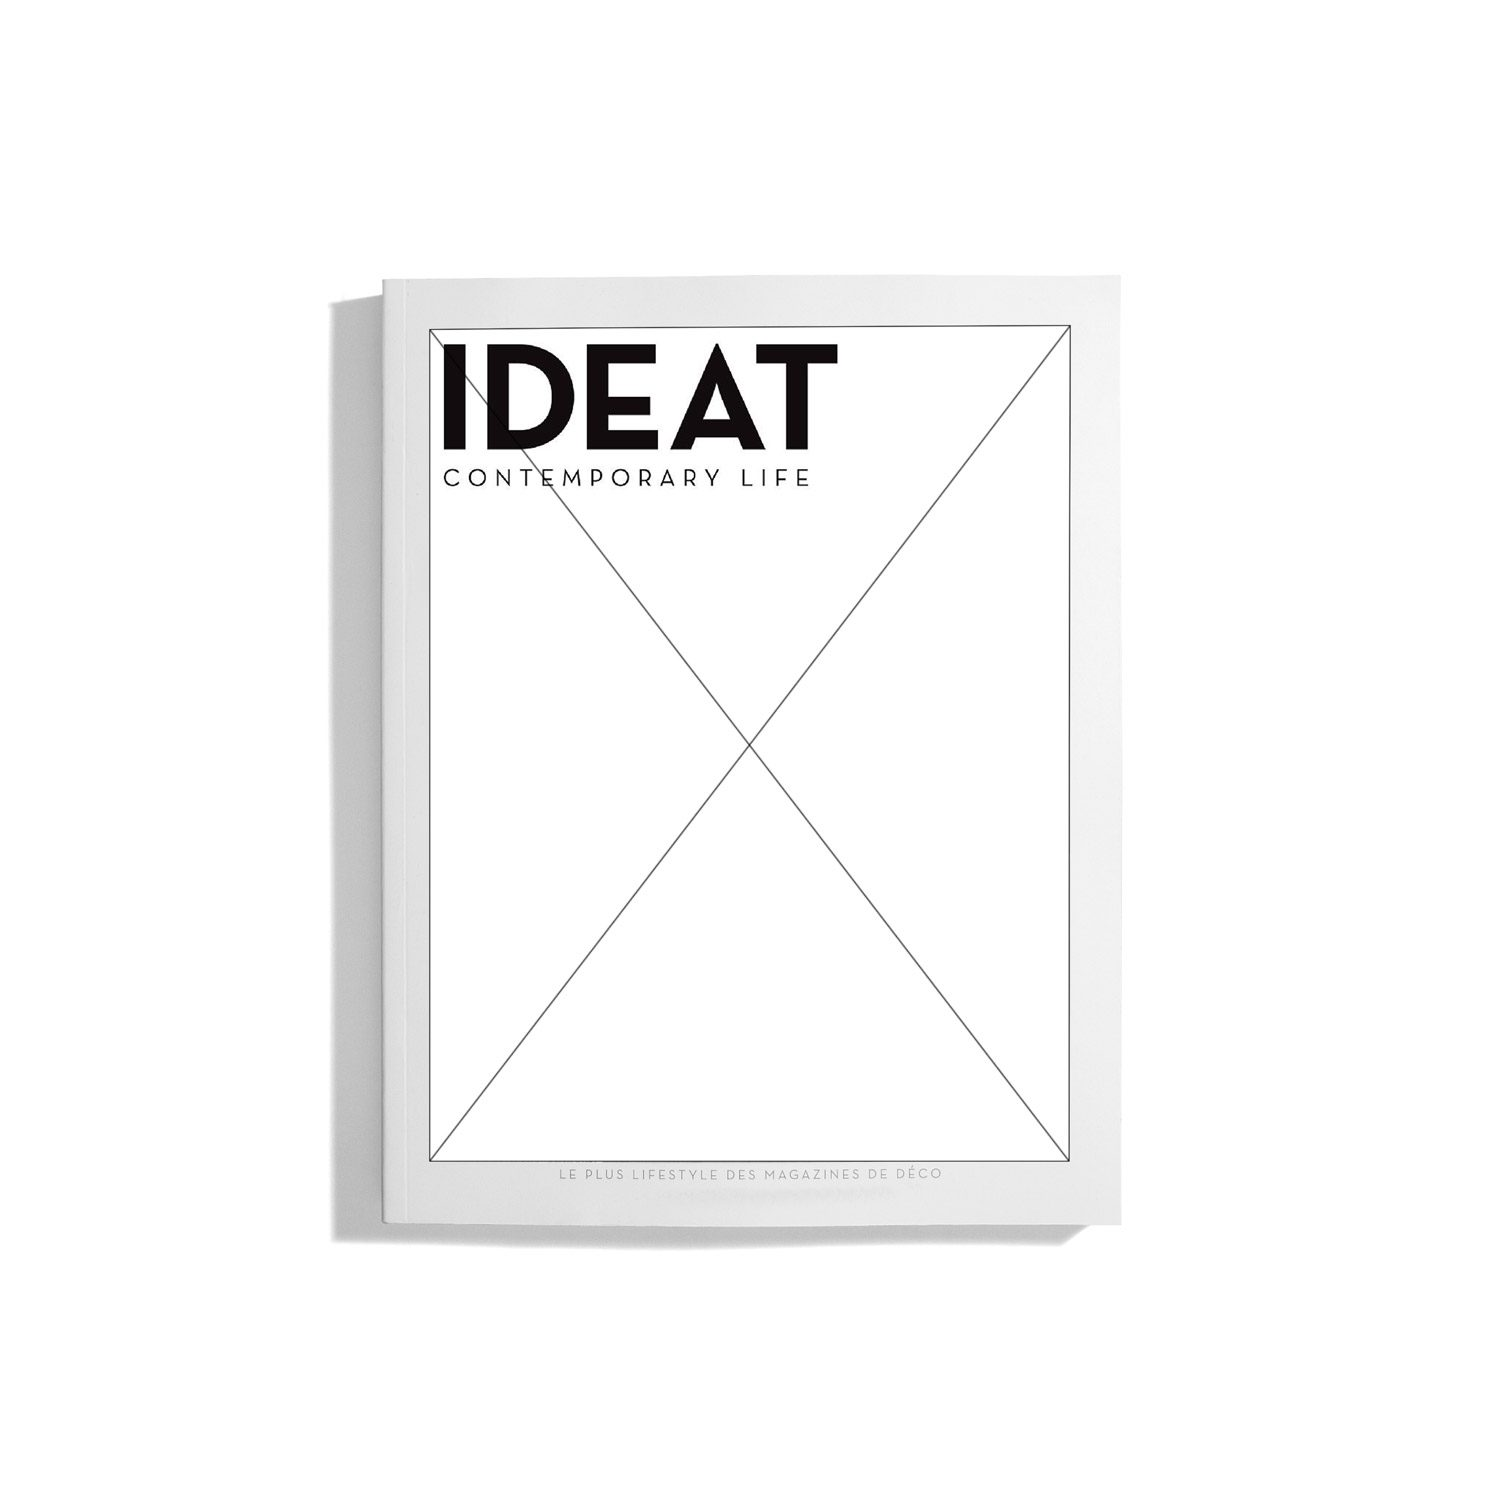 Ideat FR #142 Feb. 2020